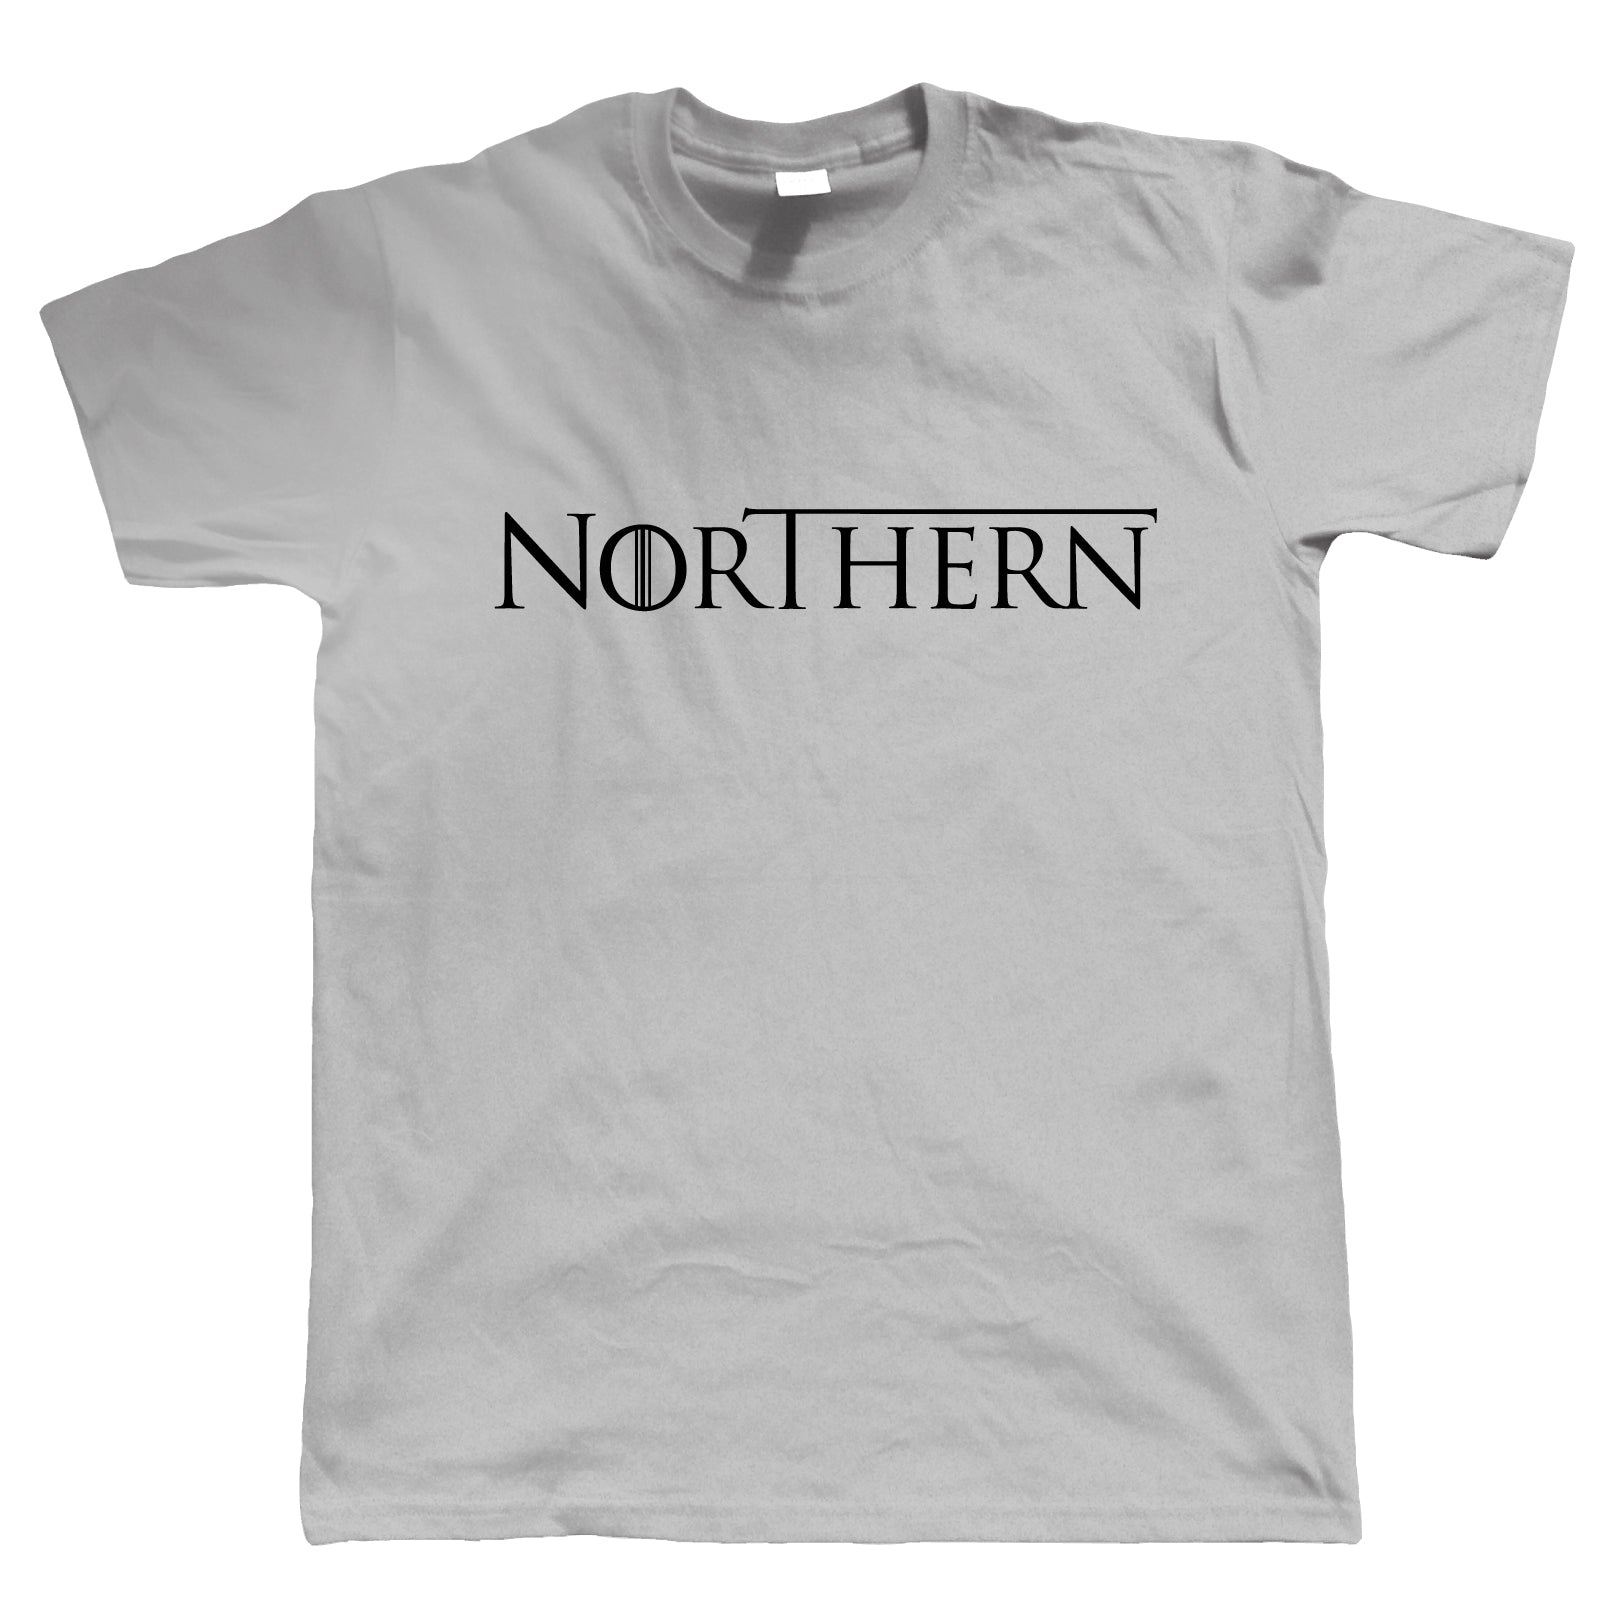 Northern GOT TV Movie Inspired Mens T-Shirt | TV Movie Fan Geek Fantasy Fiction Series | Winter North Remembers Stark Snow Ice Fire | Christmas Birthday Present Gift Him Dad